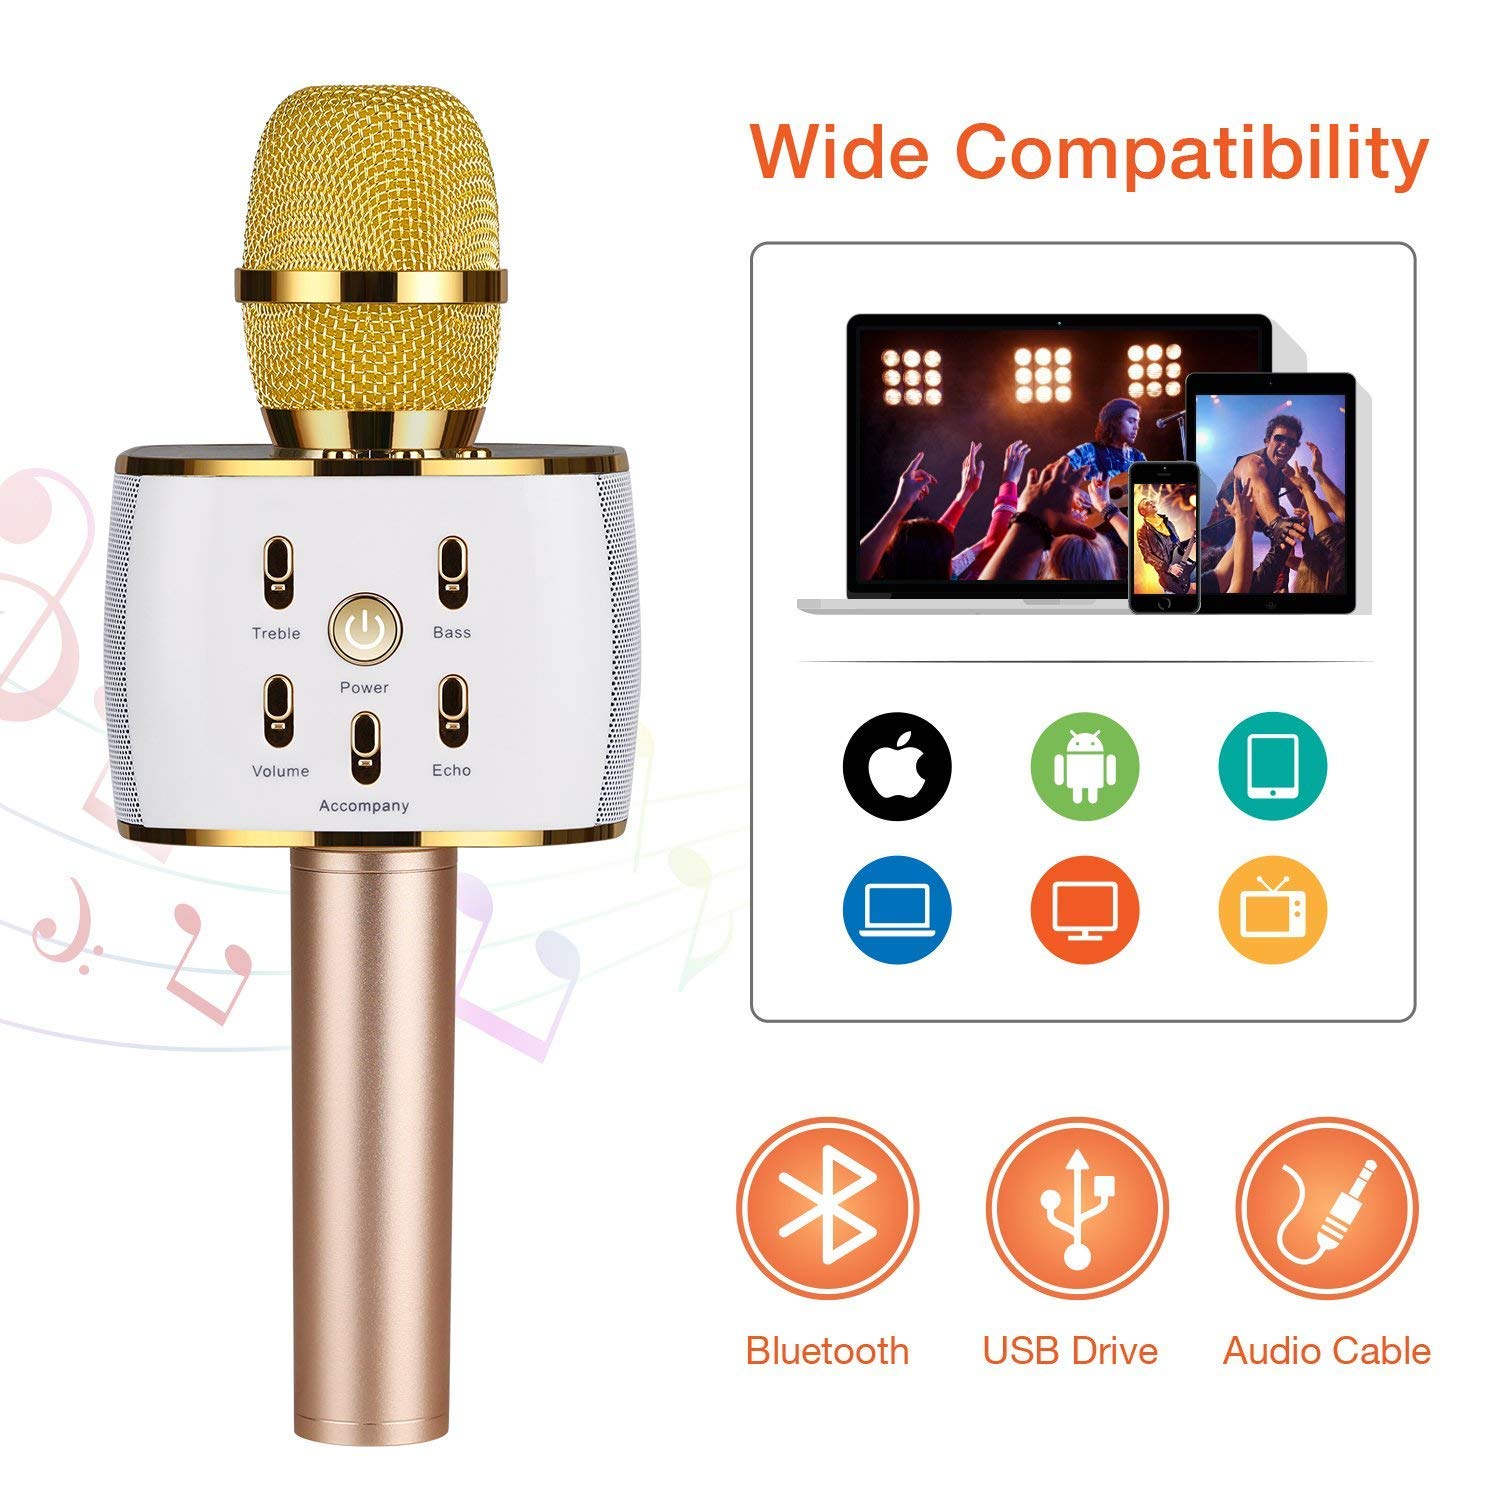 MuDella Wireless Karaoke Microphone with 2 Built-In Speakers & Pro Mixer – Portable, Bluetooth Karaoke Machine Mics Make the Ultimate Music Party Supplies – Sing Karaoke with Rechargeable Cordless Mic